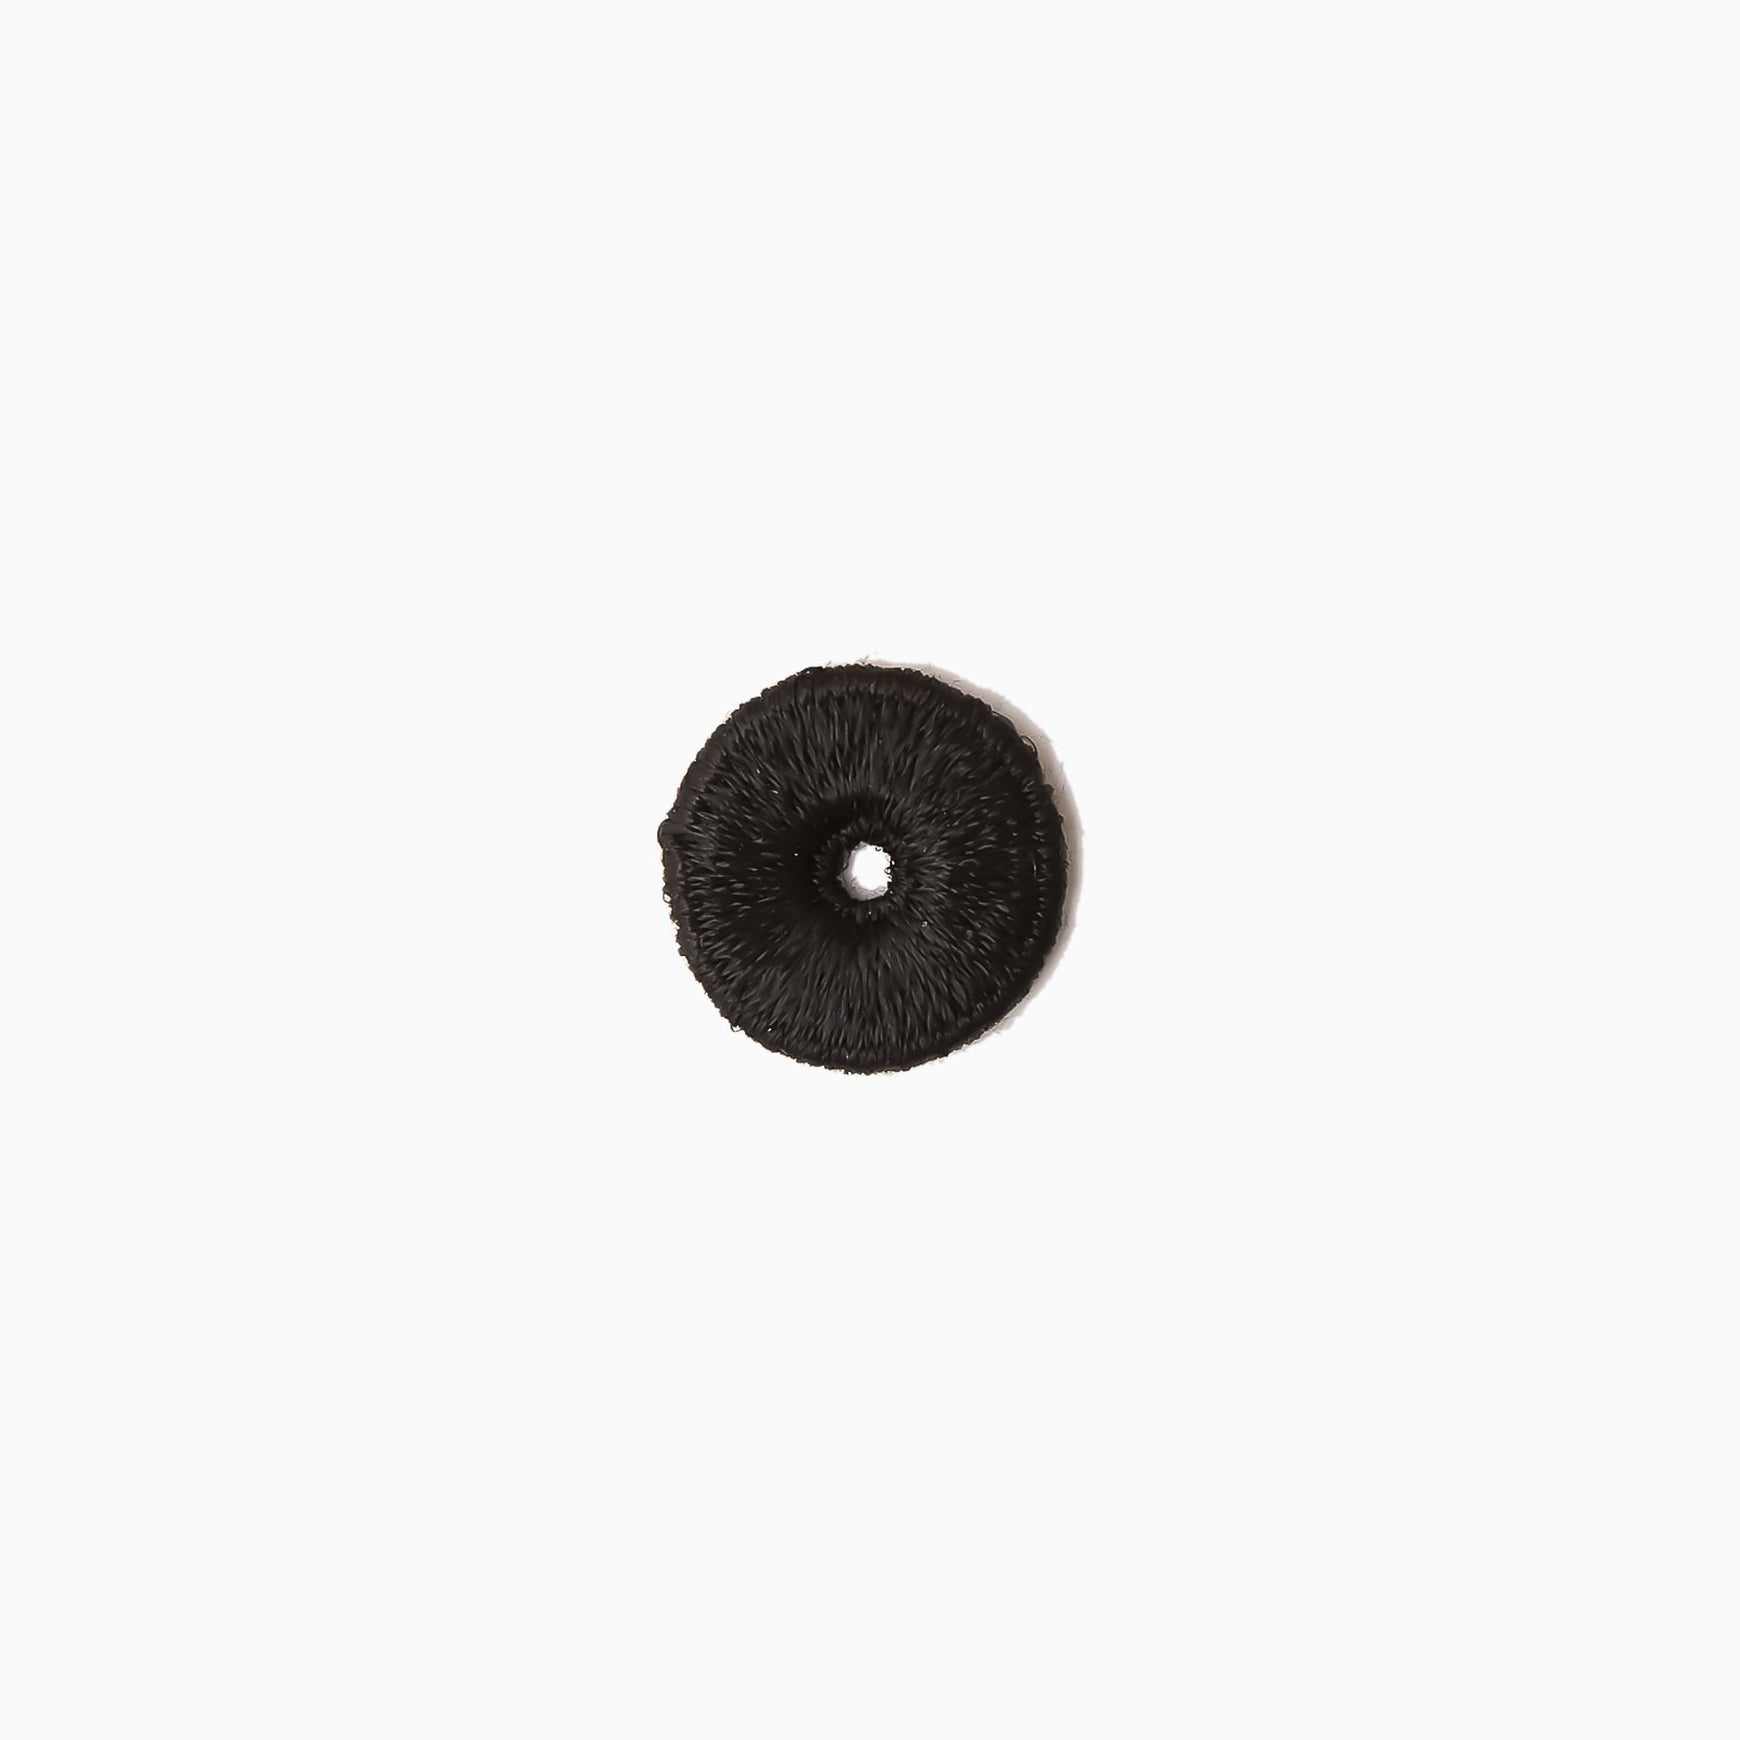 TYPE-1 Circle Washer 10 Pieces (Black)